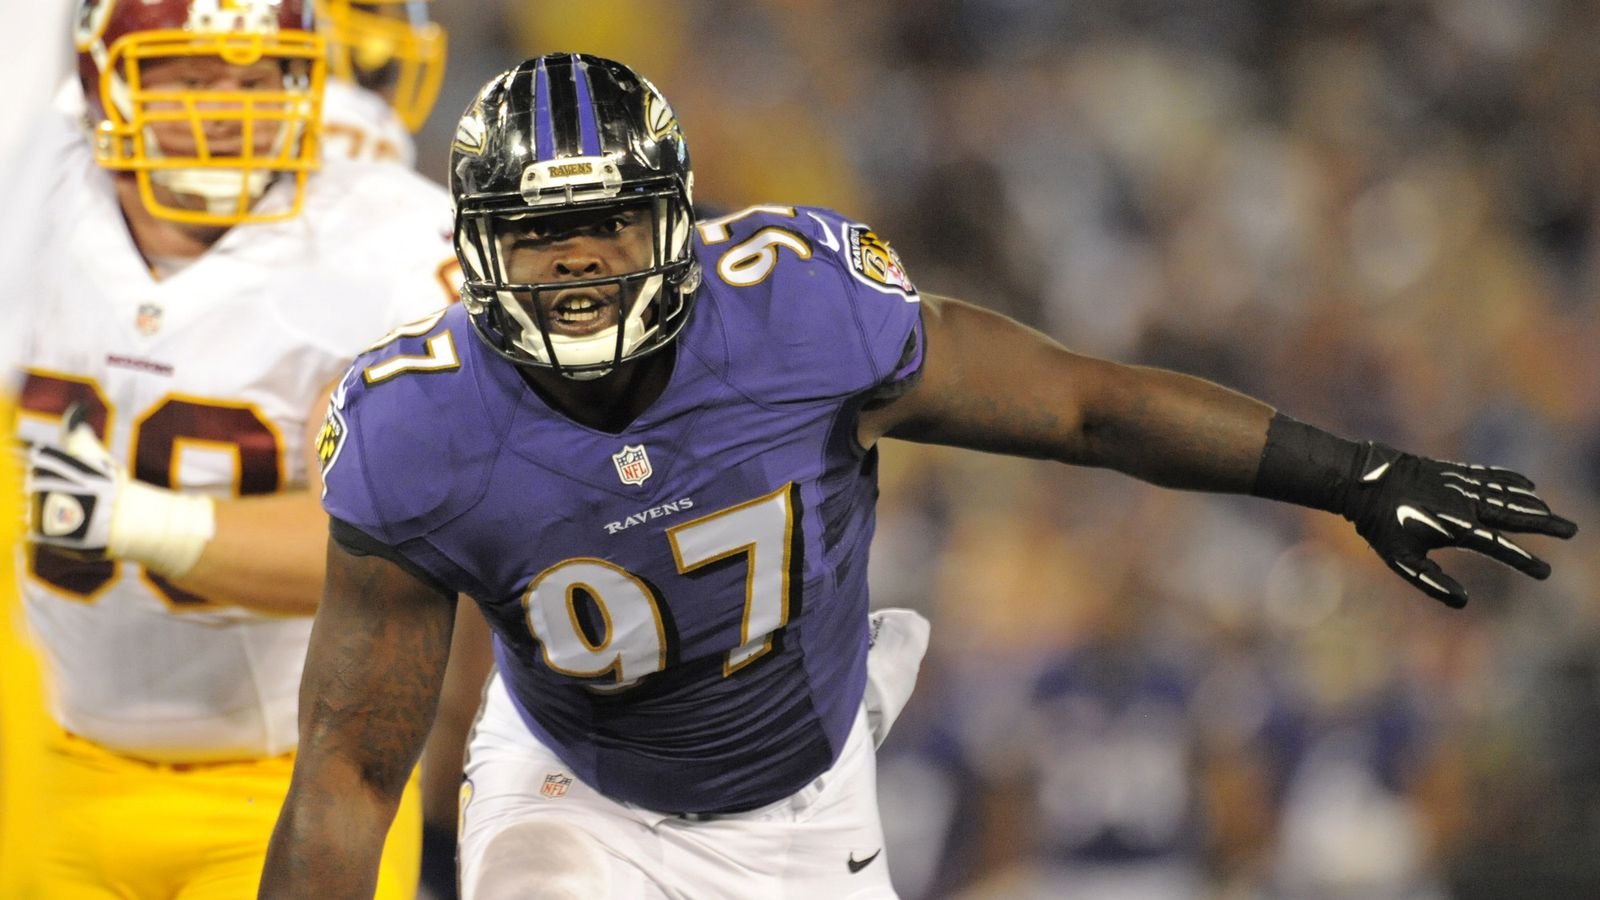 Bal-rookie-defensive-tackle-timmy-jernigan-wants-to-prove-baltimore-ravens-made-right-choice-picking-him-20140905.0